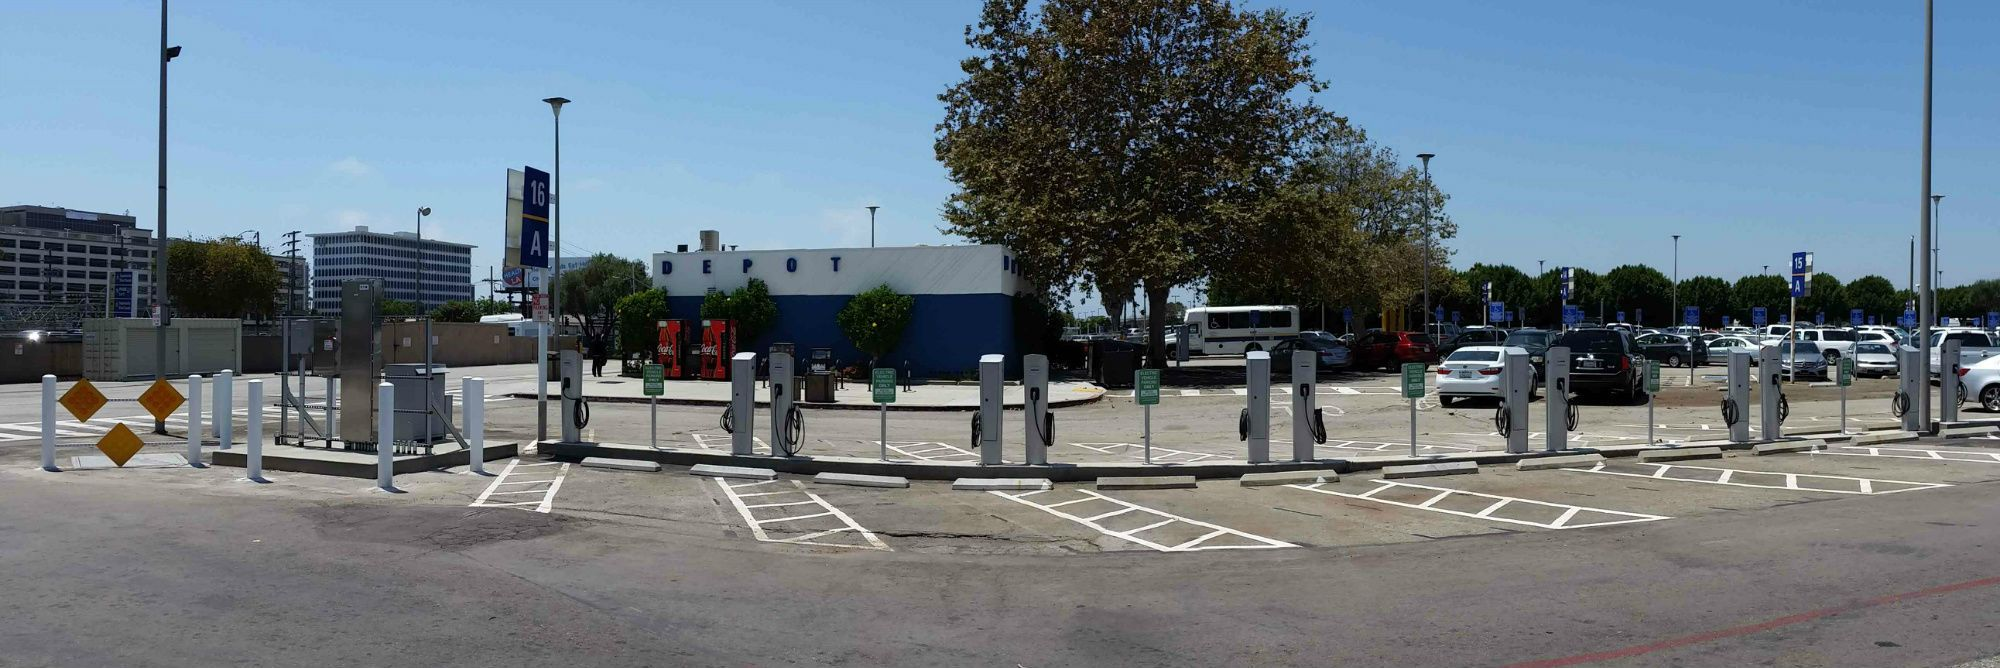 Replenish You Electric Vehicle With These 14 Charging Stations At Lax Parking Lot C